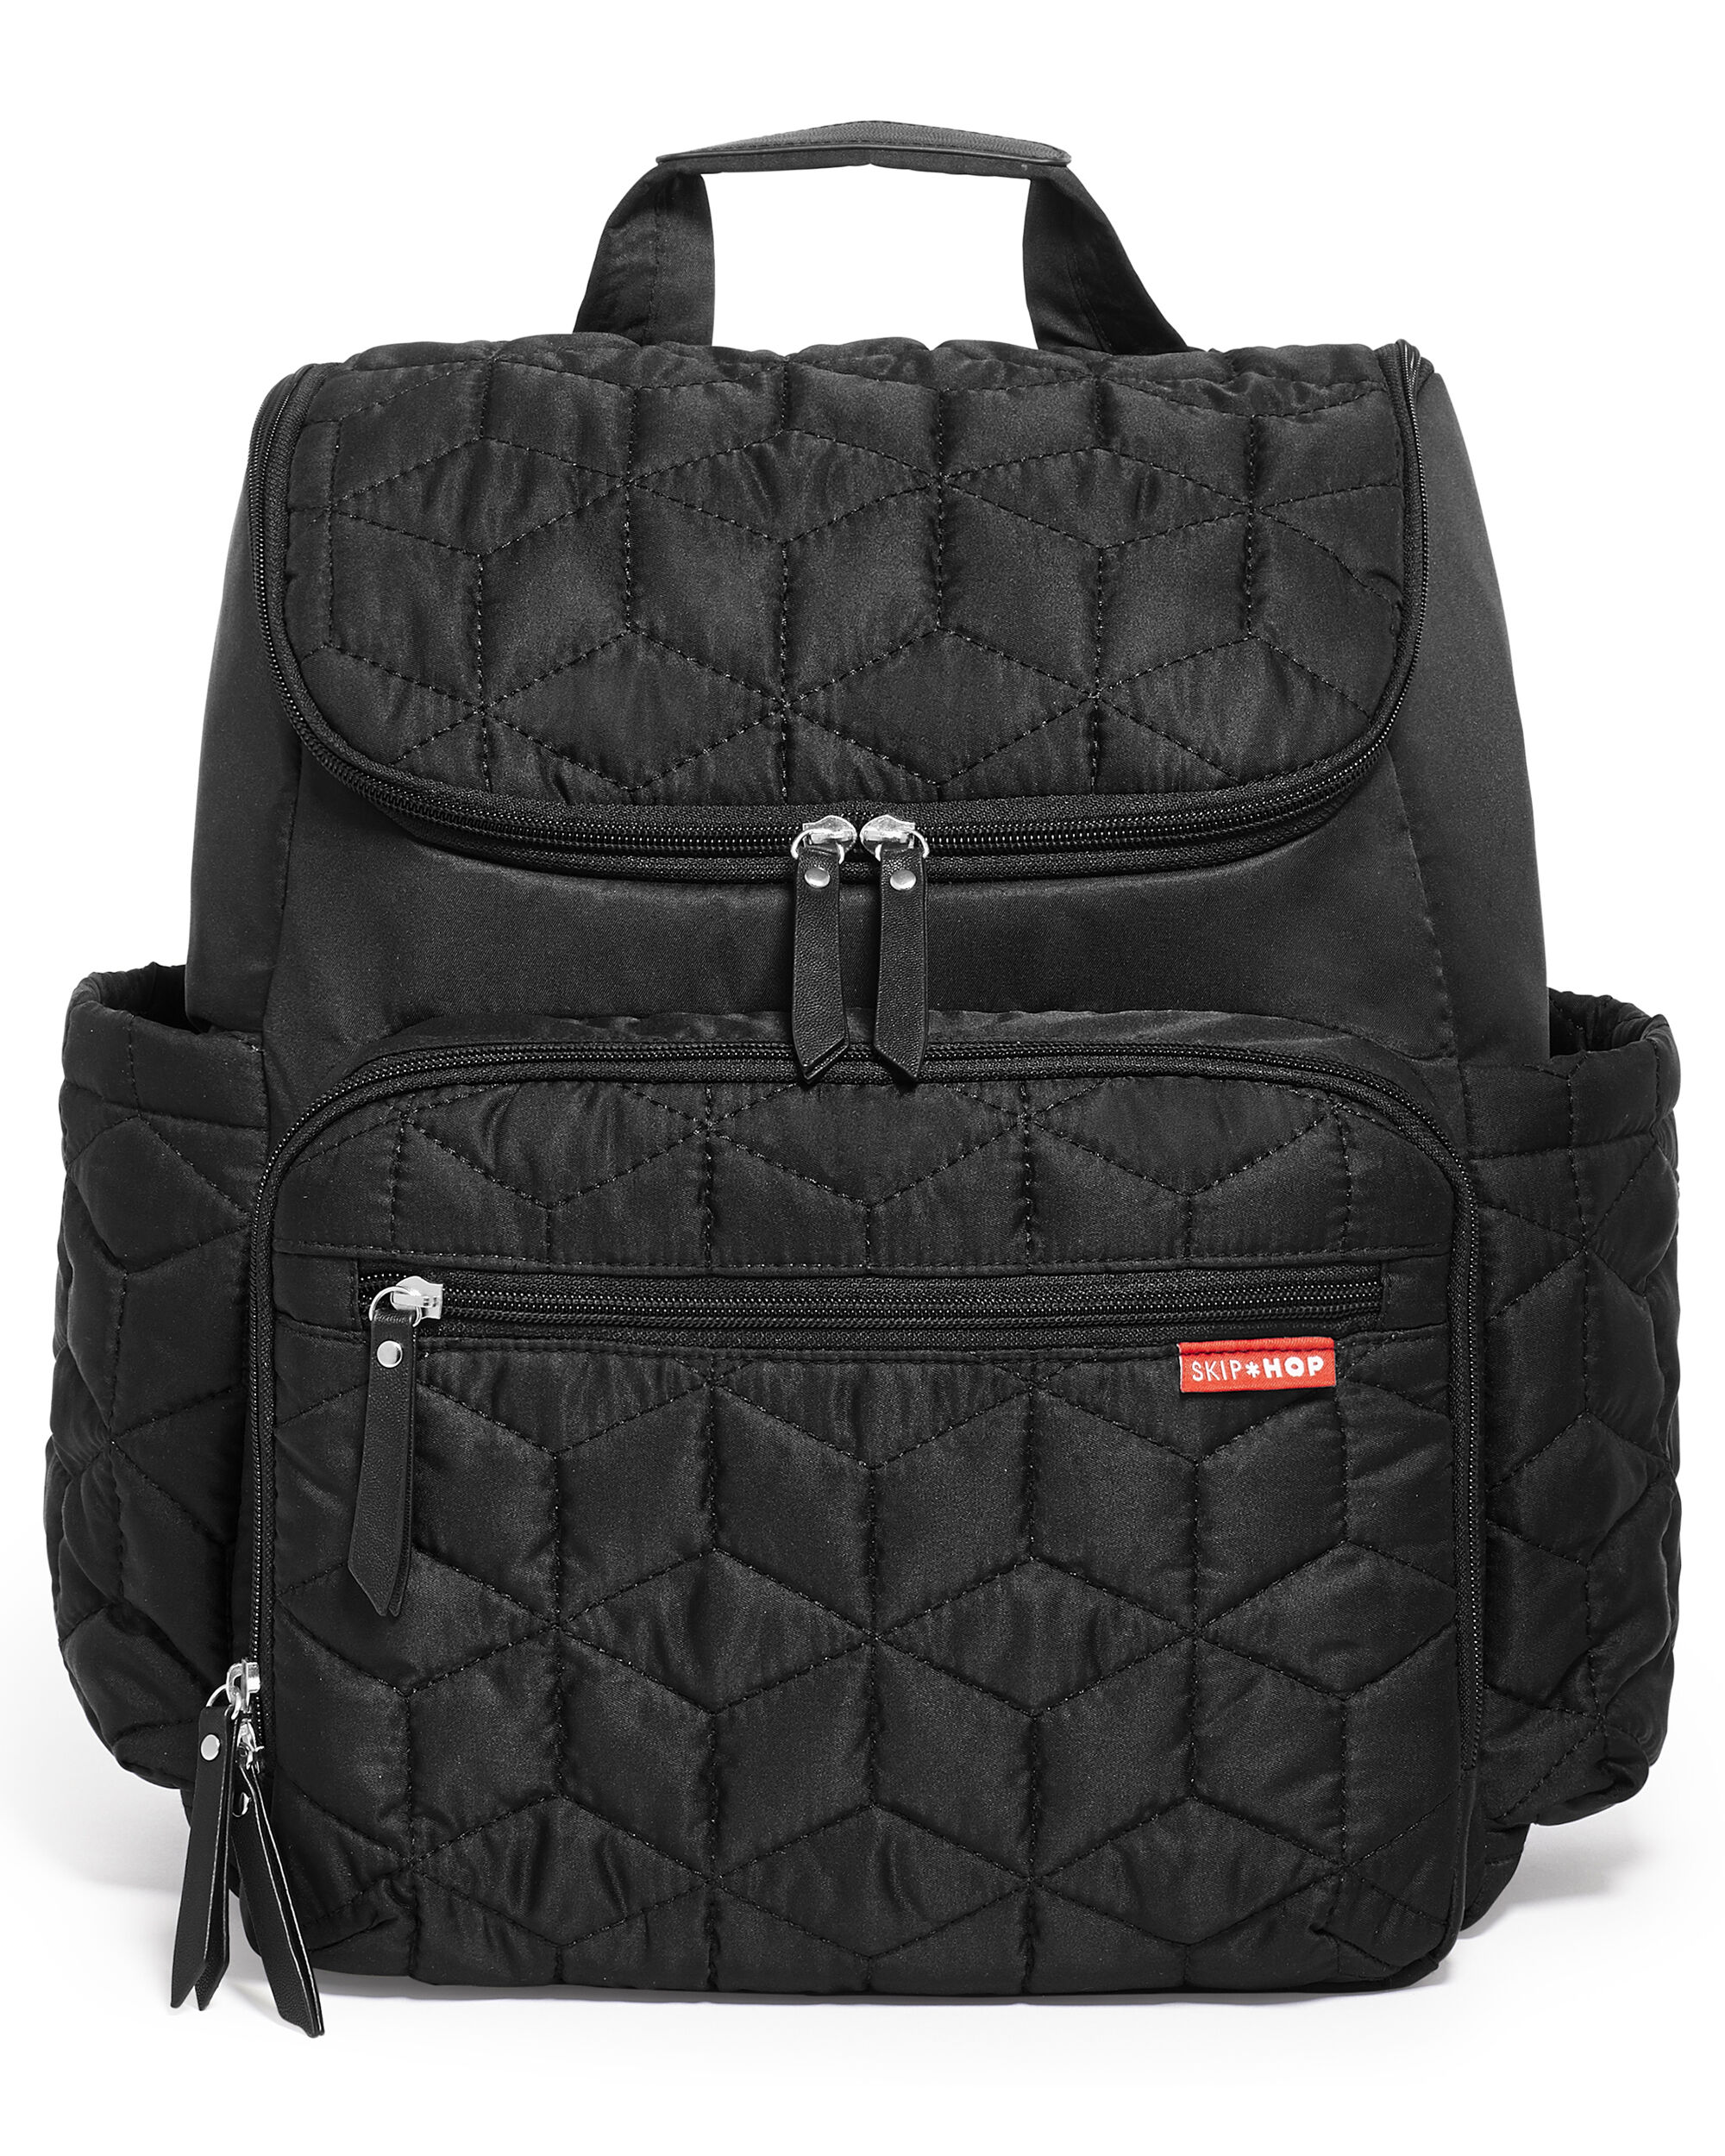 forma backpack diaper bag. Black Bedroom Furniture Sets. Home Design Ideas